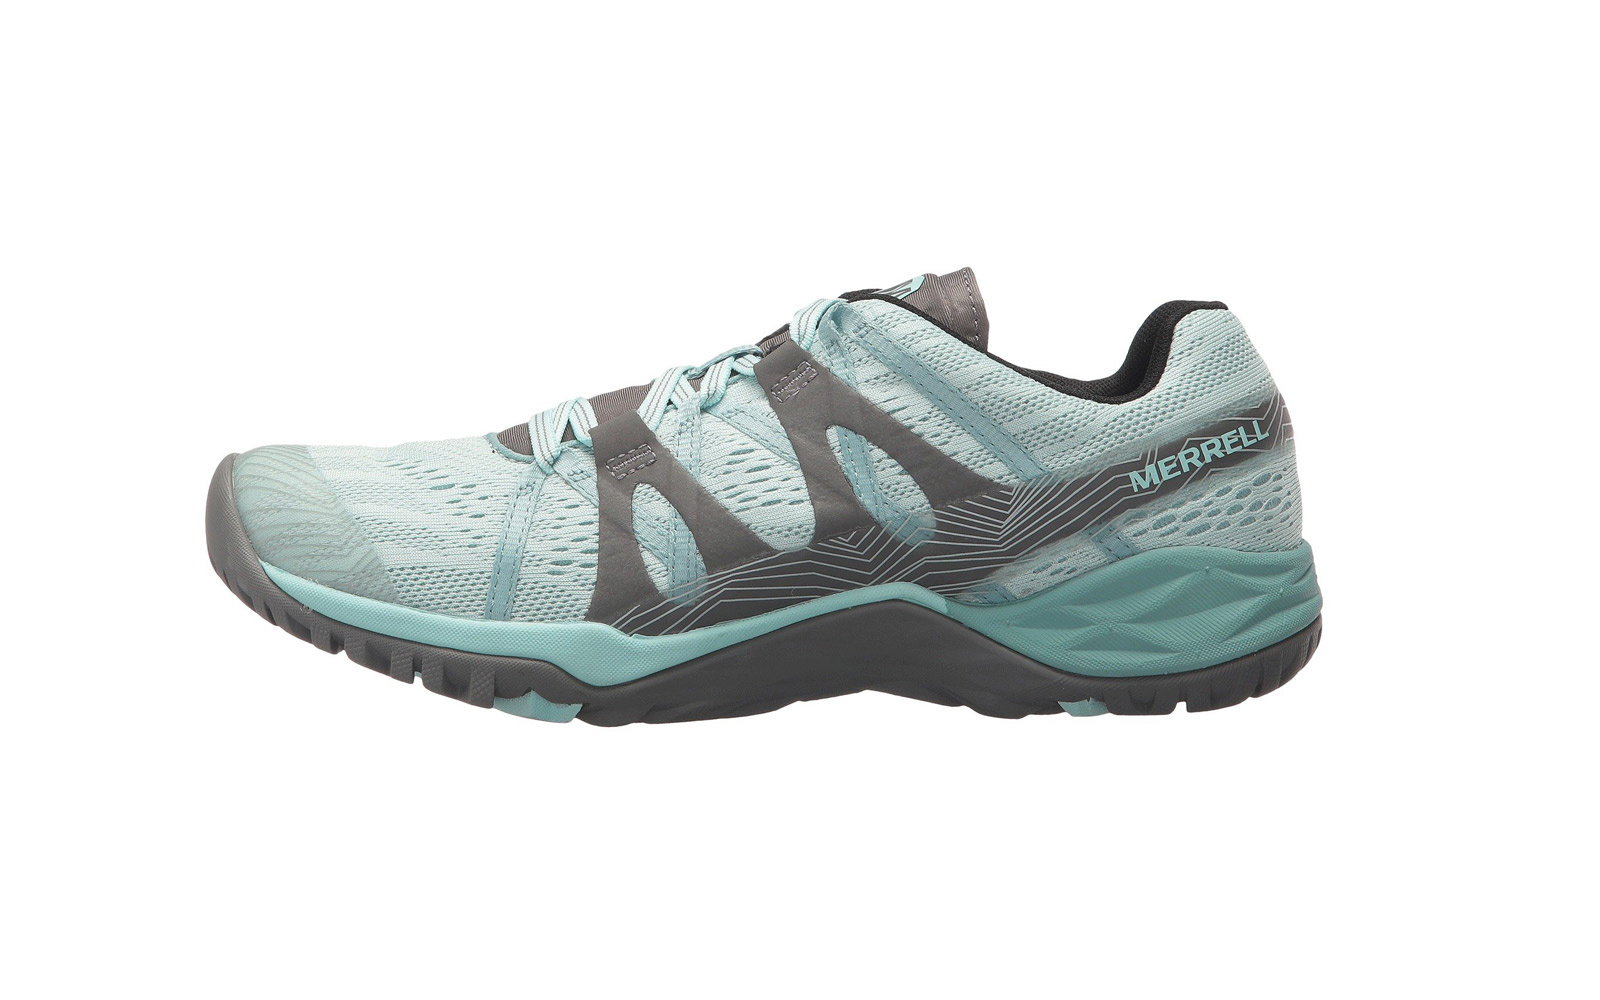 44e785b8dfe Best for  Taking to the Trails. comfy walking shoes merrell